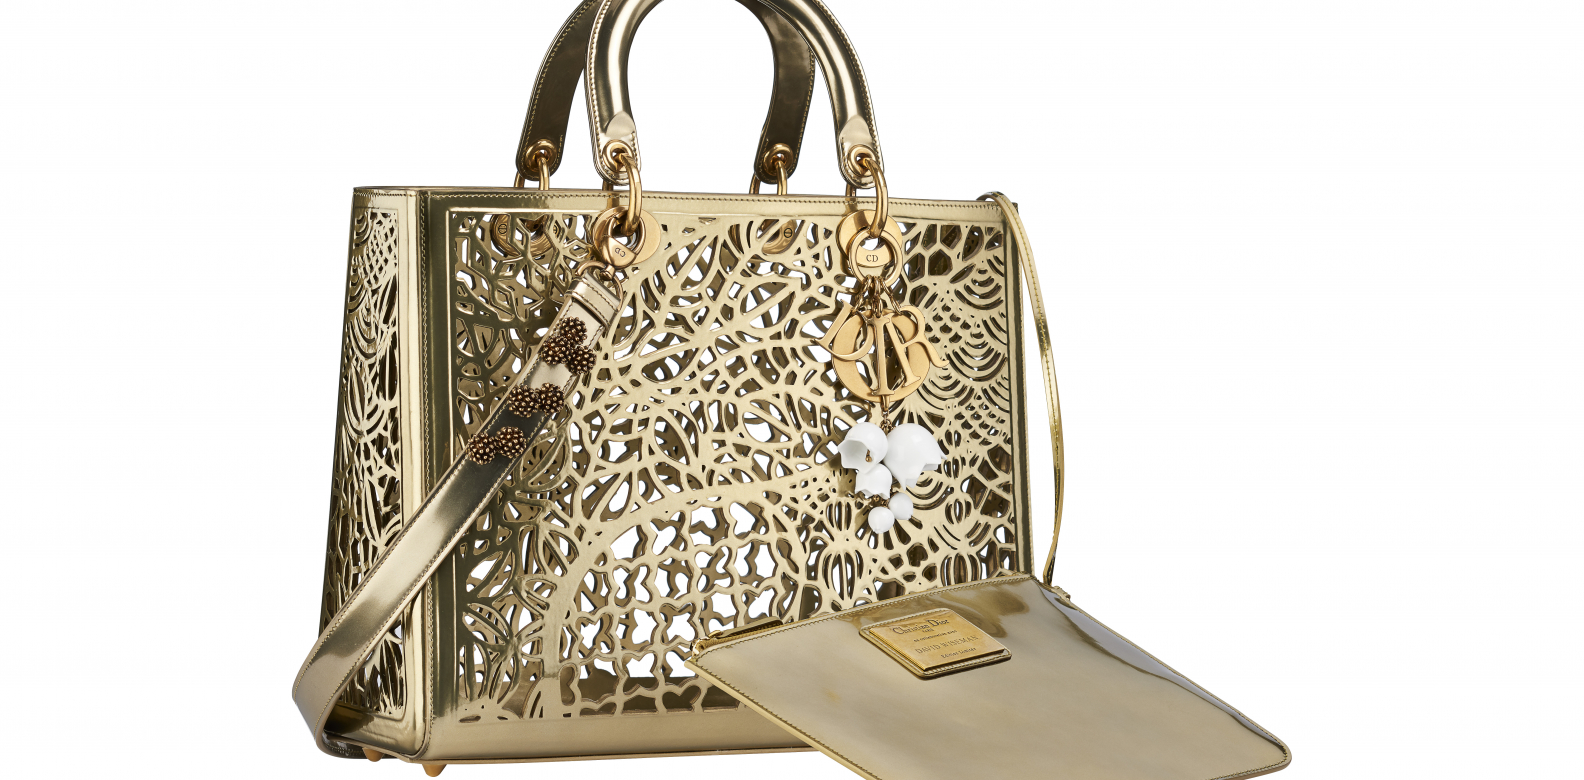 One of the two Lady Dior bags designed by David Wiseman - Dior Lady Art #2. Photo courtesy of Frederic Leclere